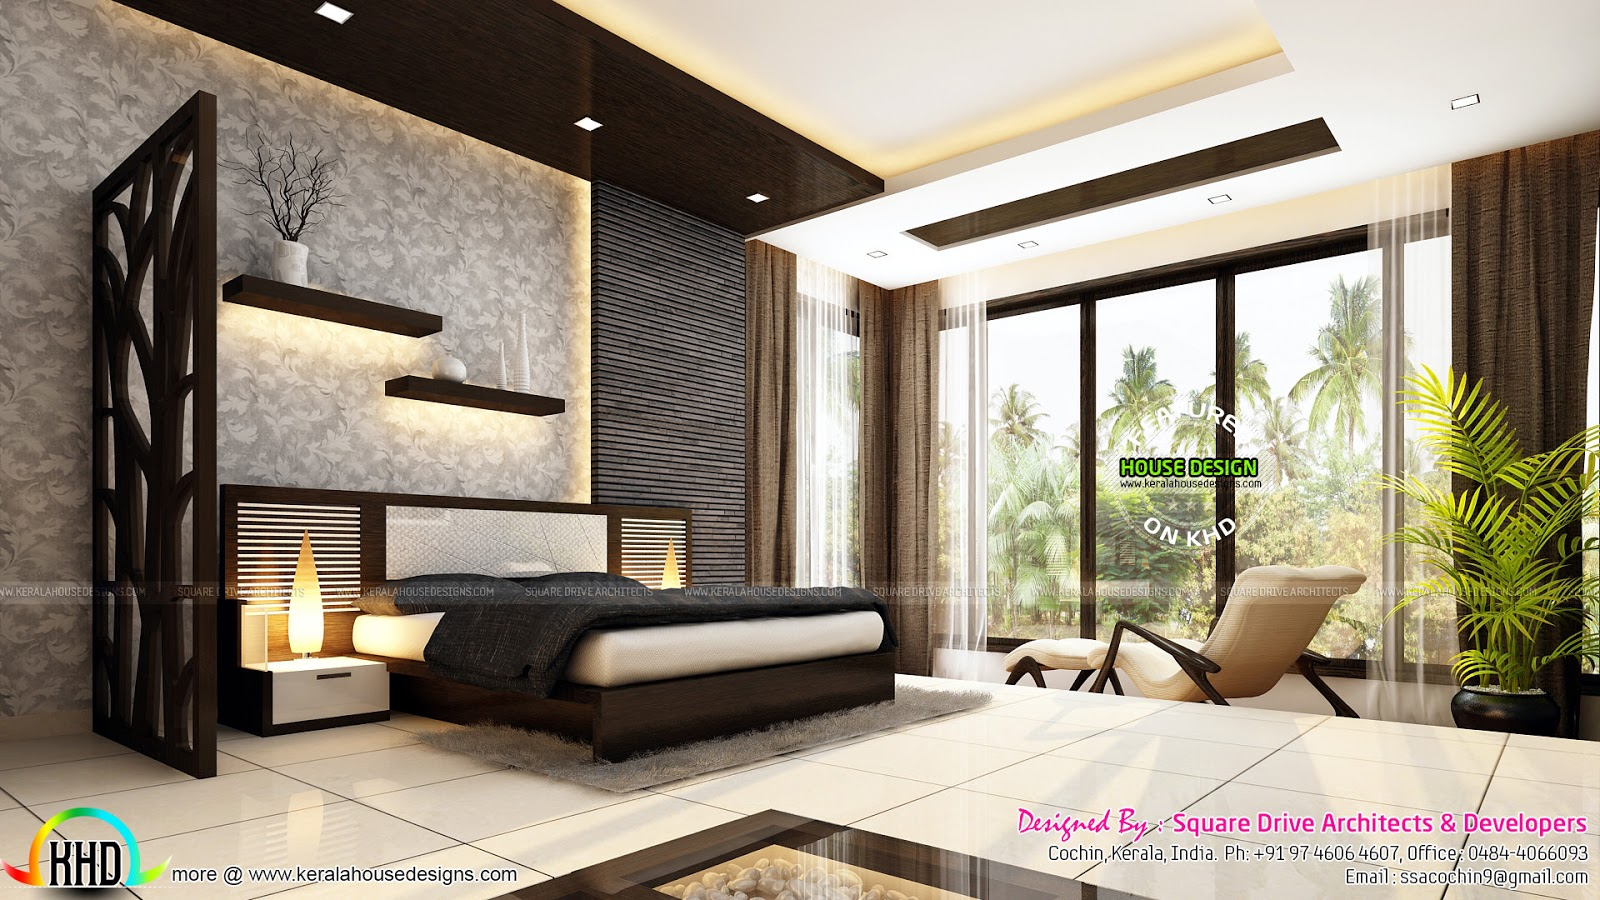 Very beautiful modern interior designs kerala home design and floor plans Beautiful home interior design ideas